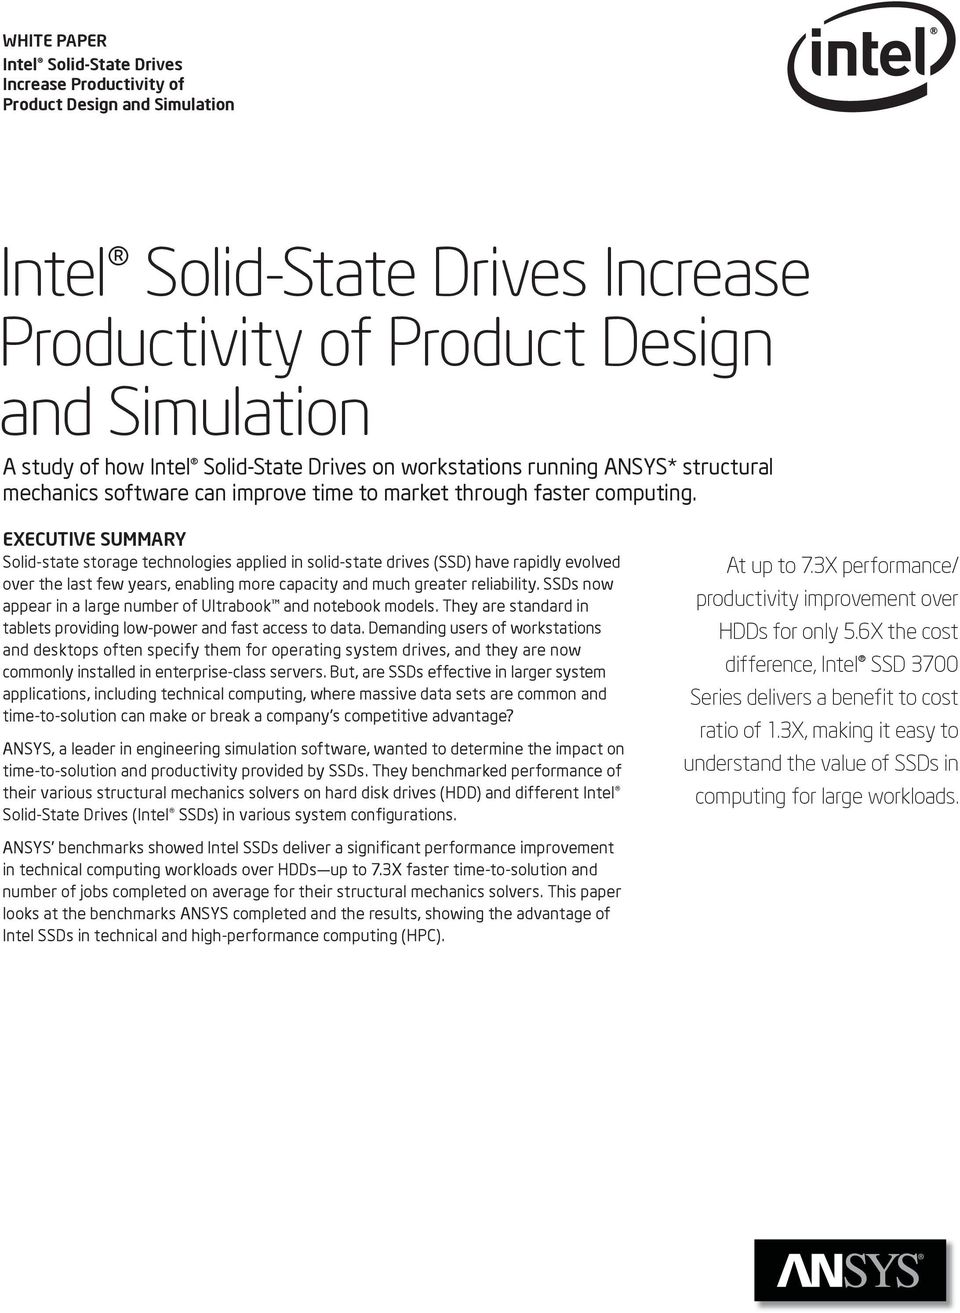 EXECUTIVE SUMMARY Solid-state storage technologies applied in solid-state drives (SSD) have rapidly evolved over the last few years, enabling more capacity and much greater reliability.